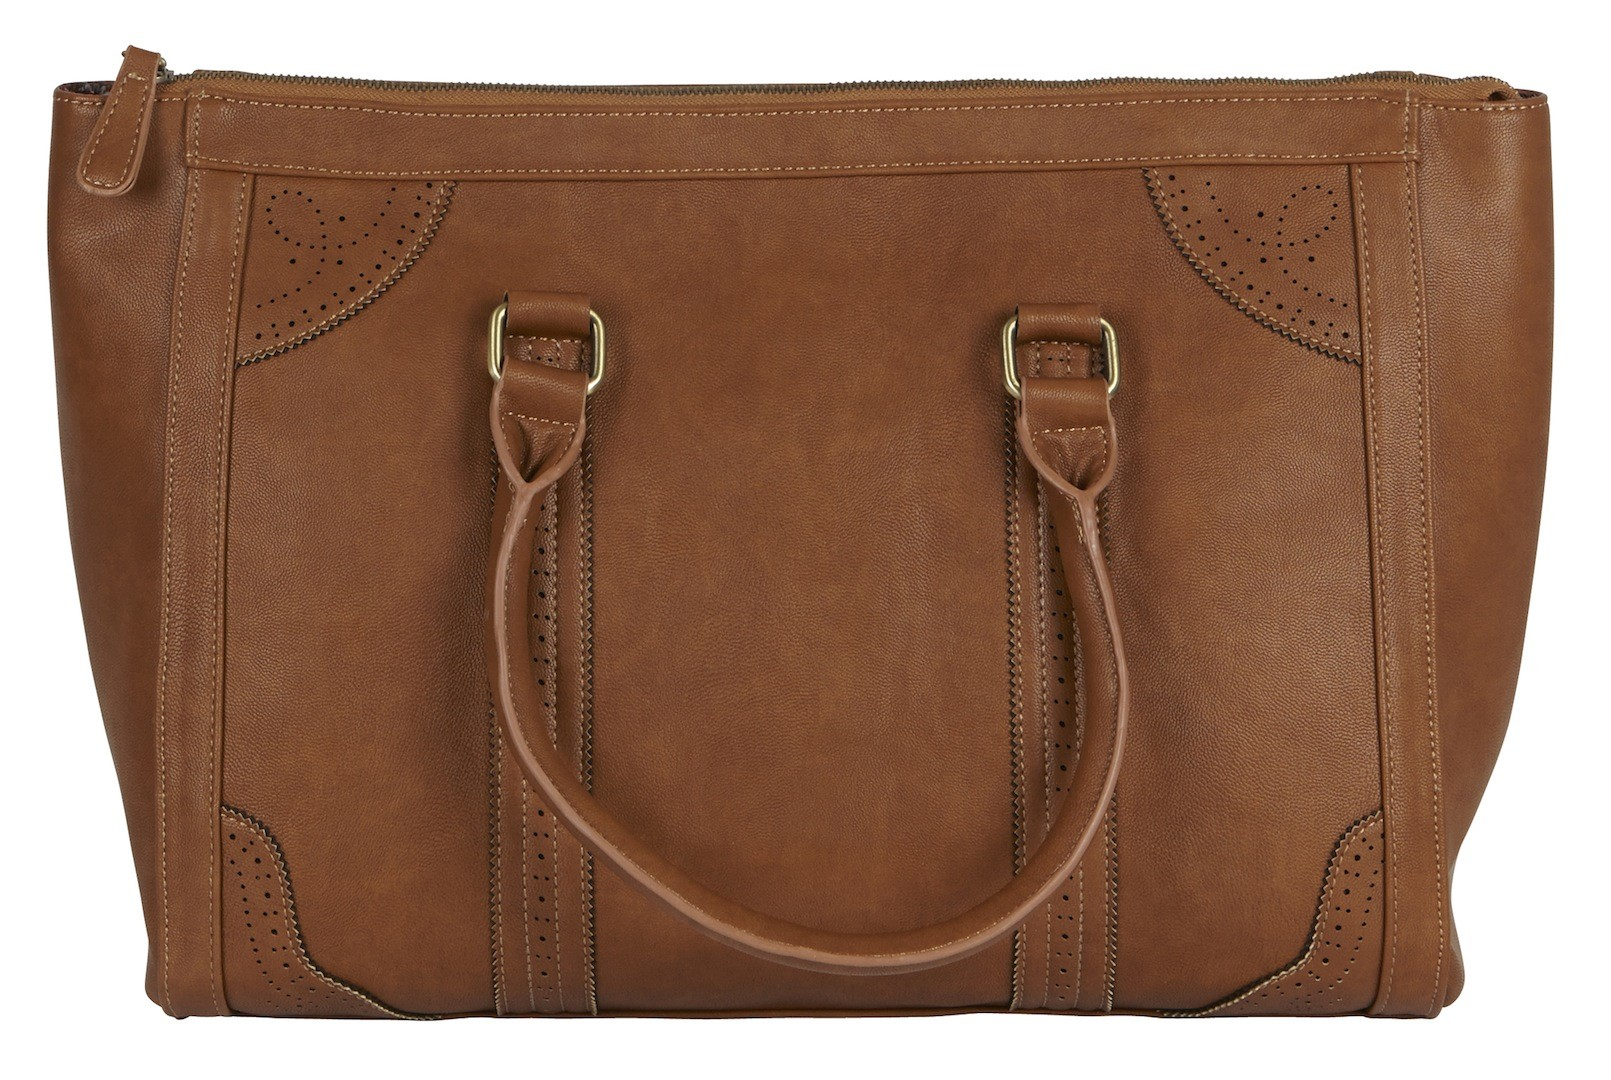 Xcesri, Broguing Detail Shopper, Tan, $79.99